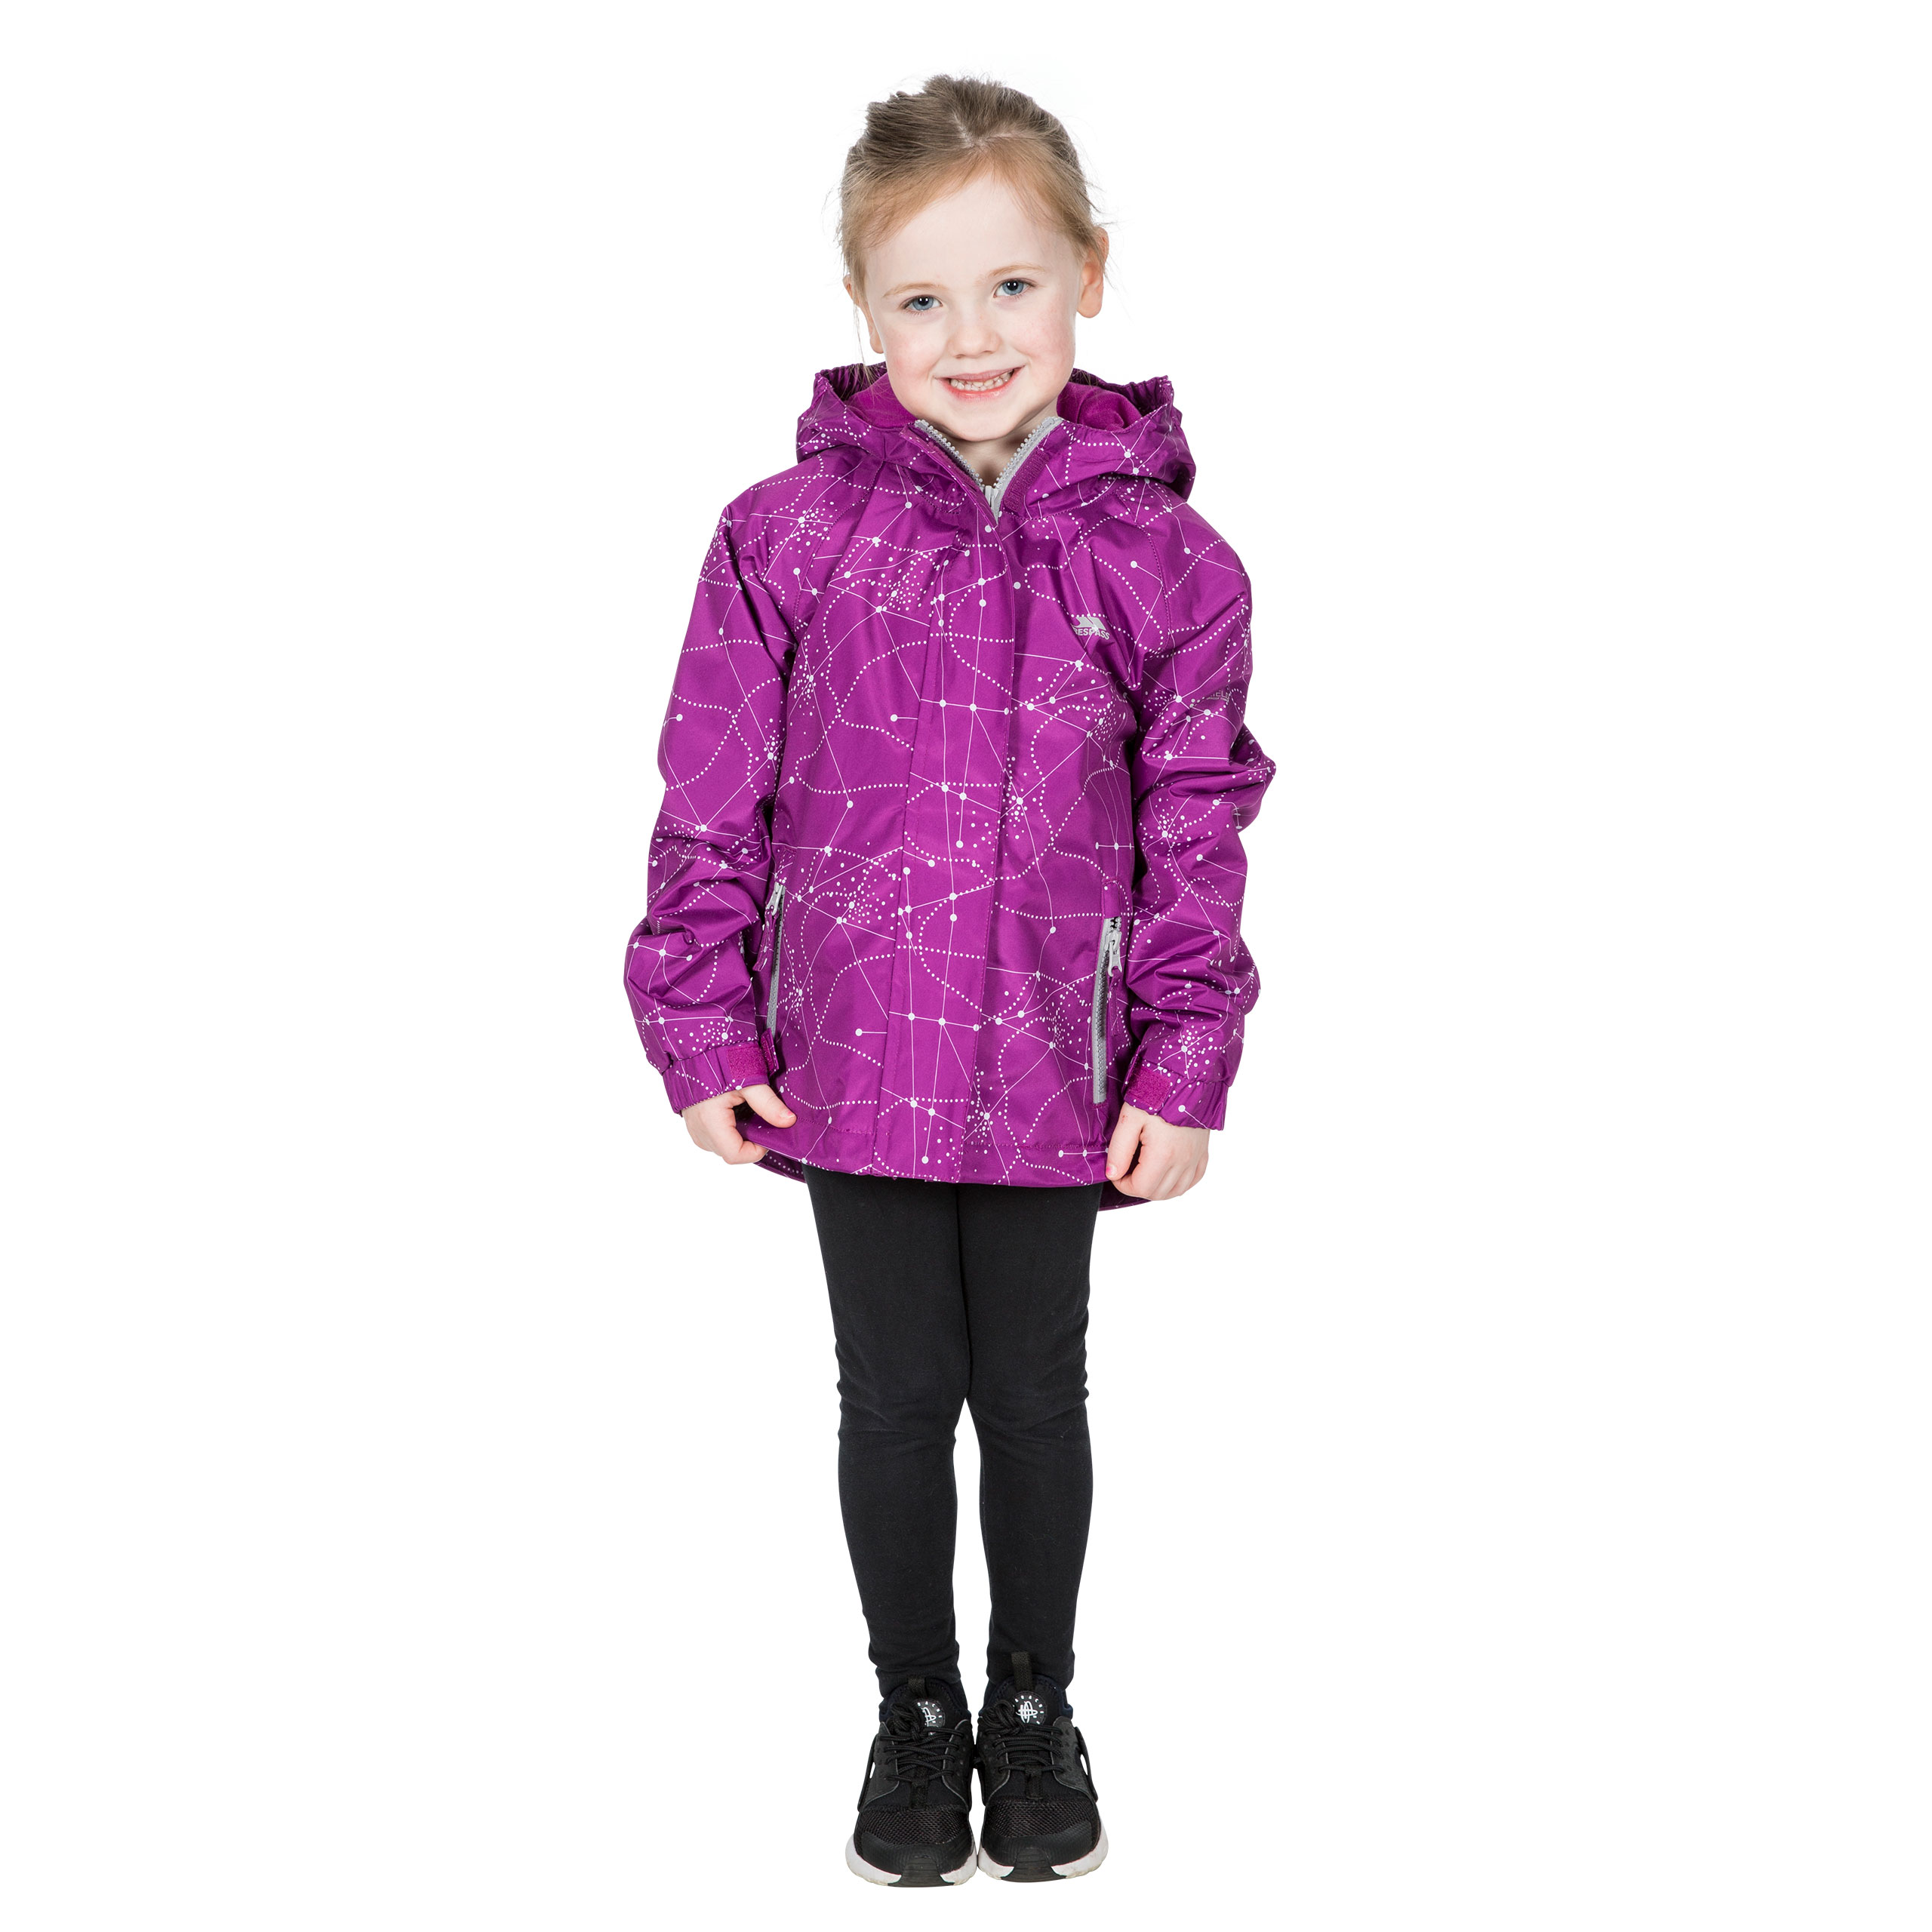 Trespass-Vilma-Girls-Waterproof-Jacket-in-Navy-and-Purple-With-Hood thumbnail 15